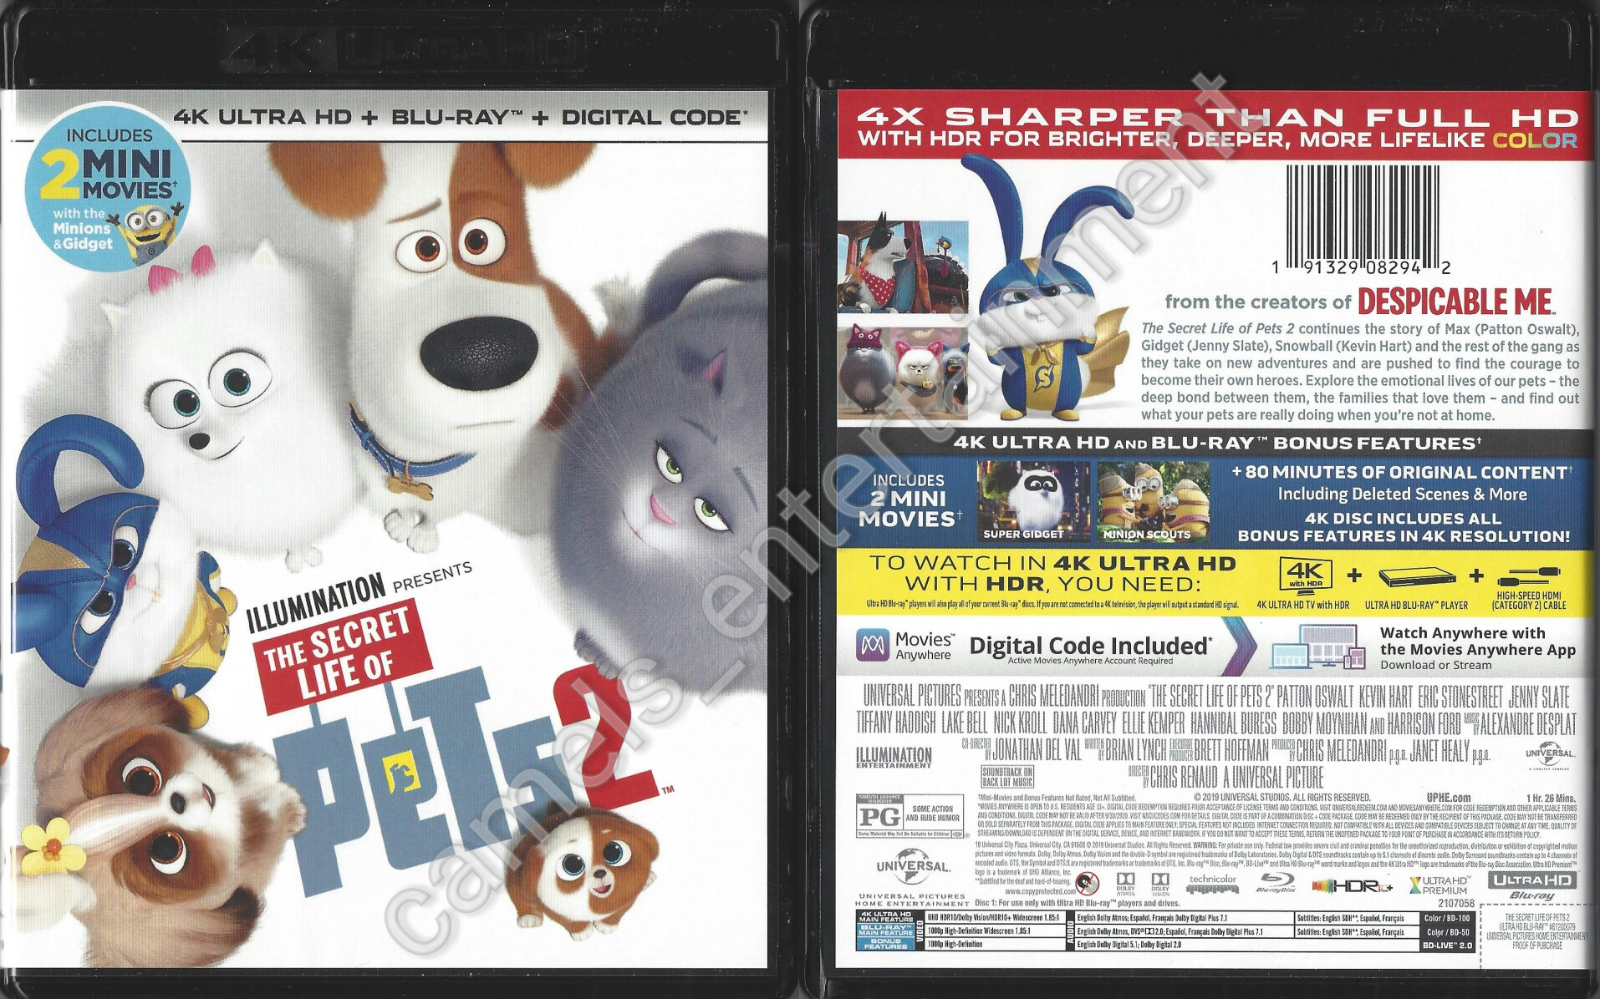 The Secret Life Of Pets 2 Includes 4K UHD Blu-ray Disc, 2019  - $10.19